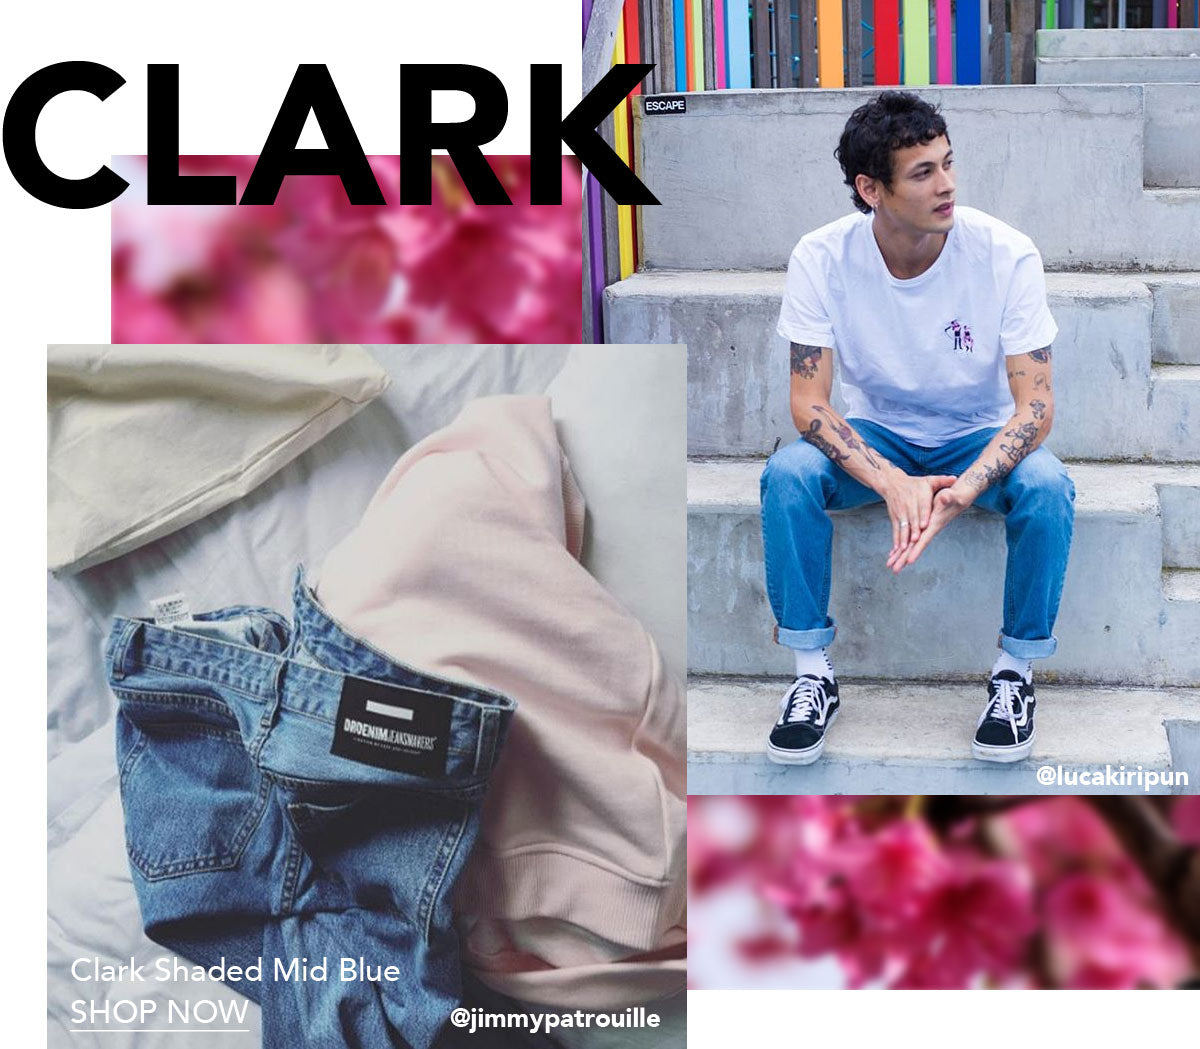 Clark Shaded Mid Blue